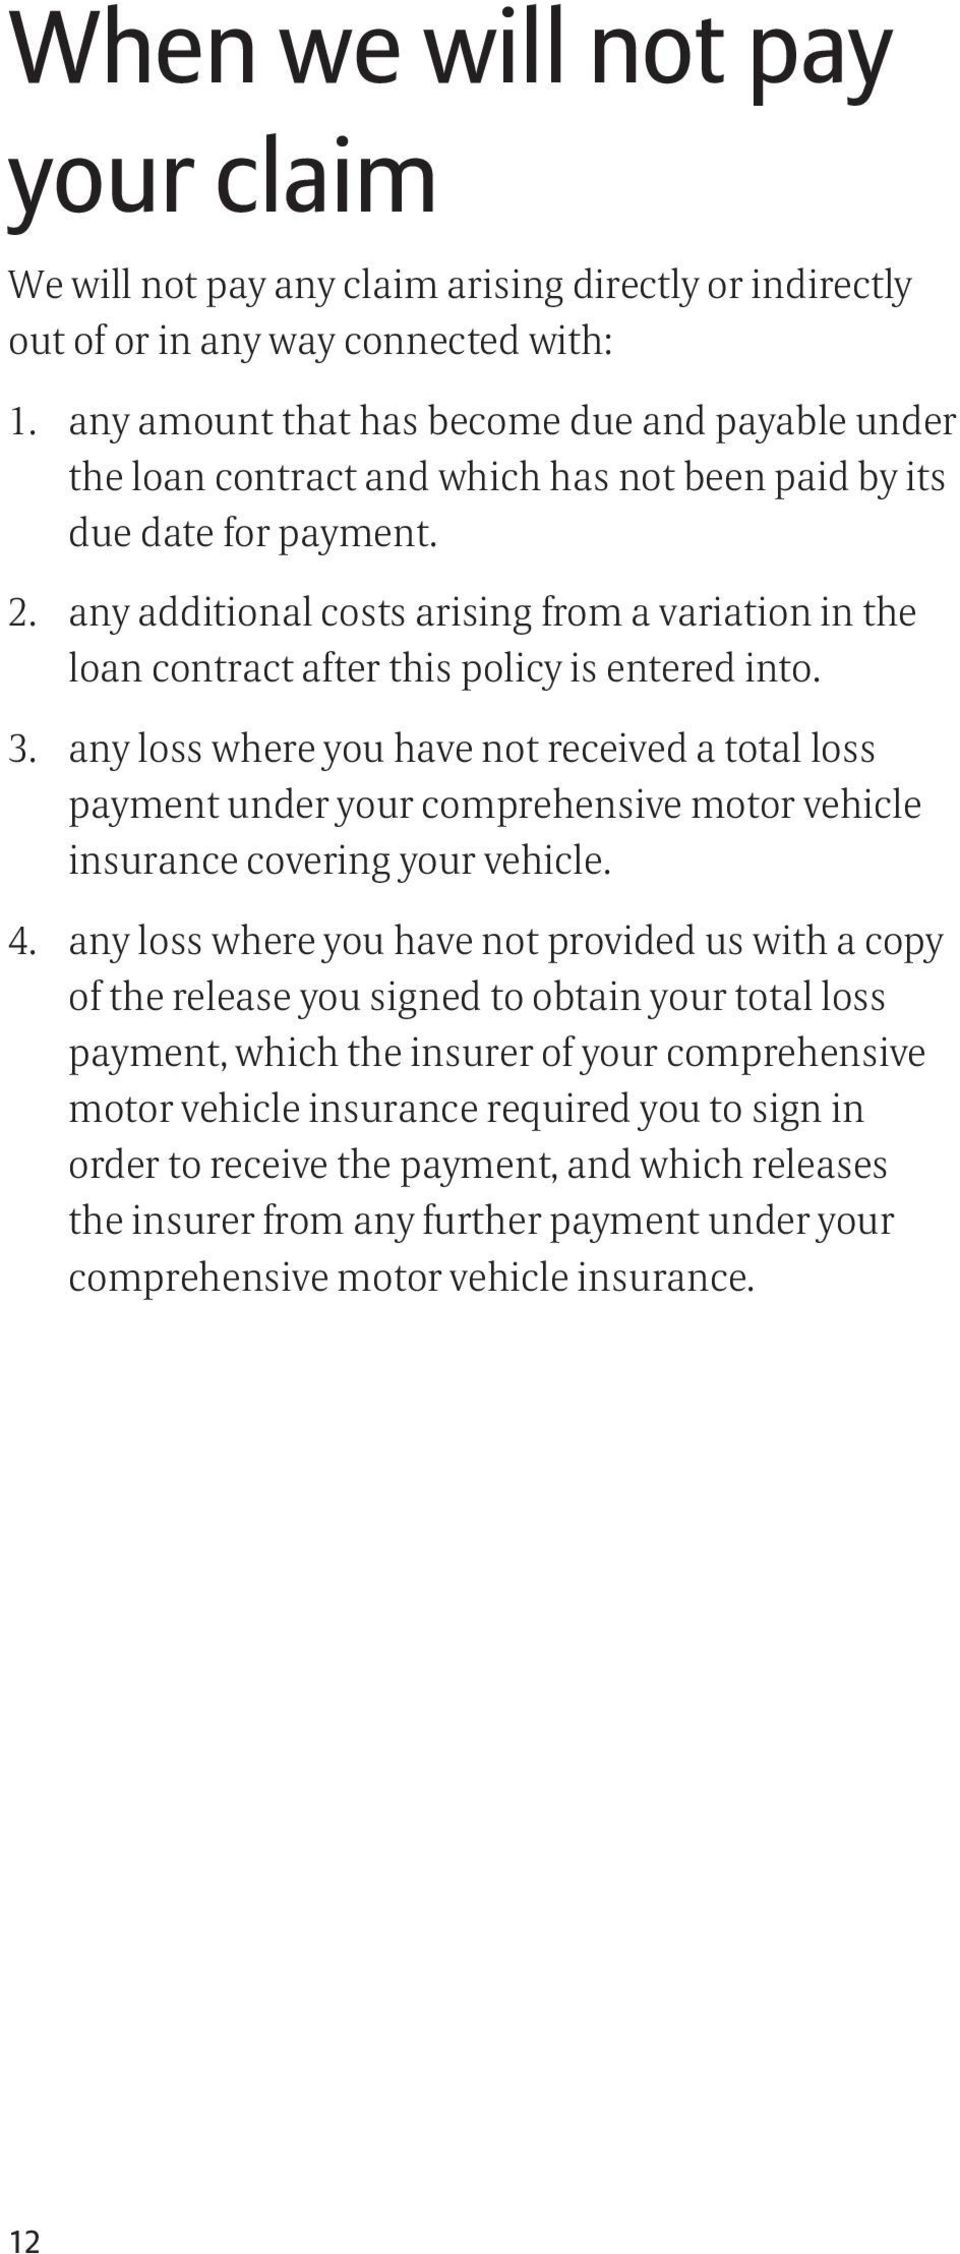 any additional costs arising from a variation in the loan contract after this policy is entered into. 3.